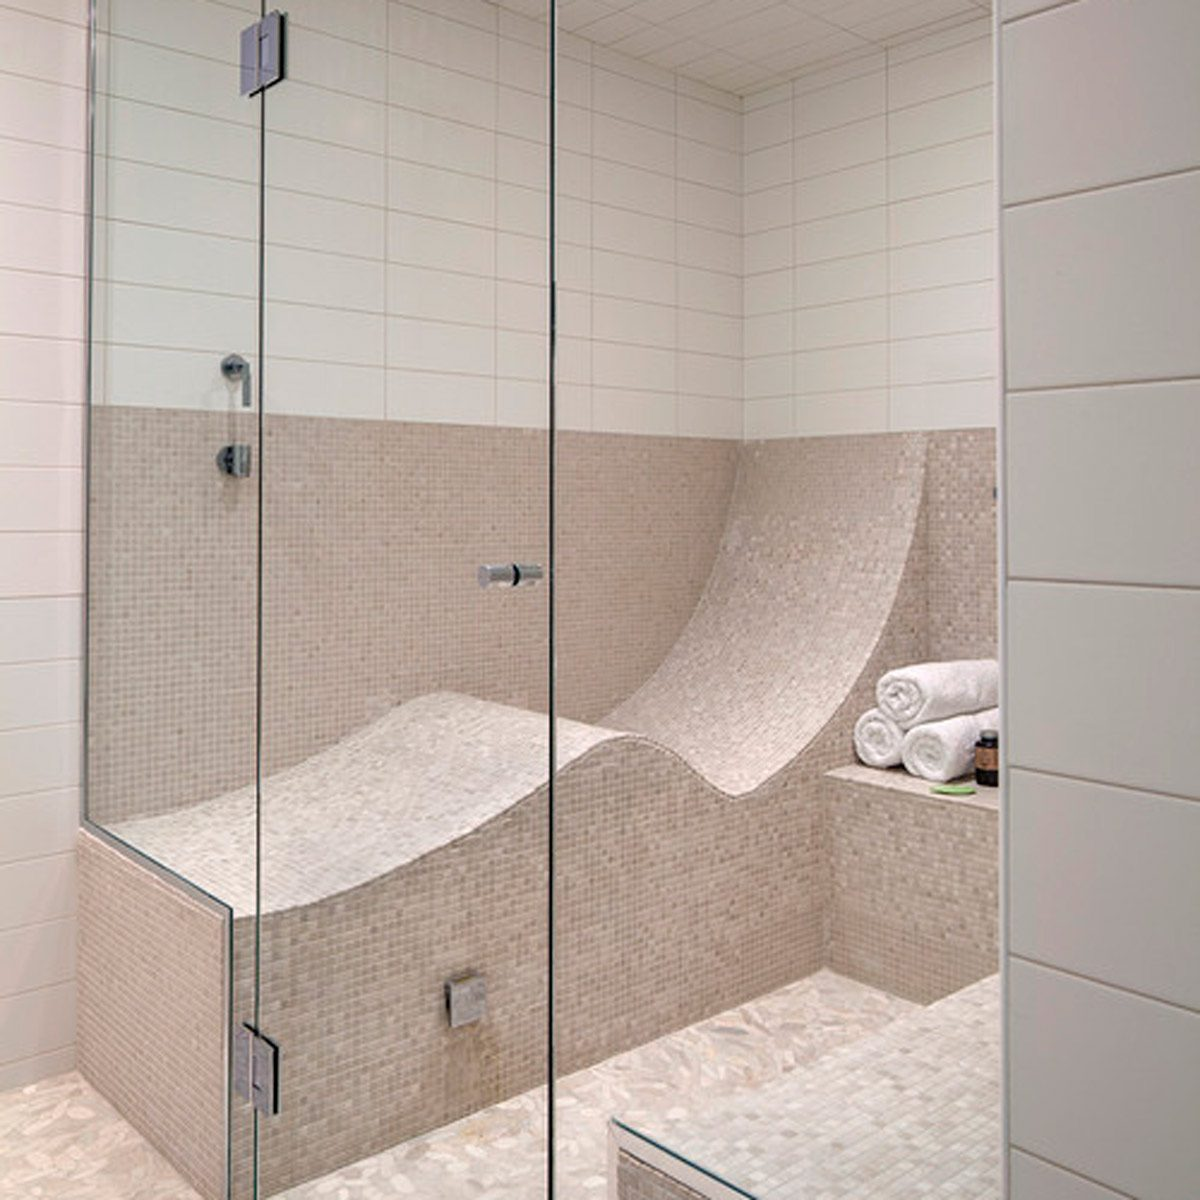 15 Incredible Steam Shower Ideas Family Handyman